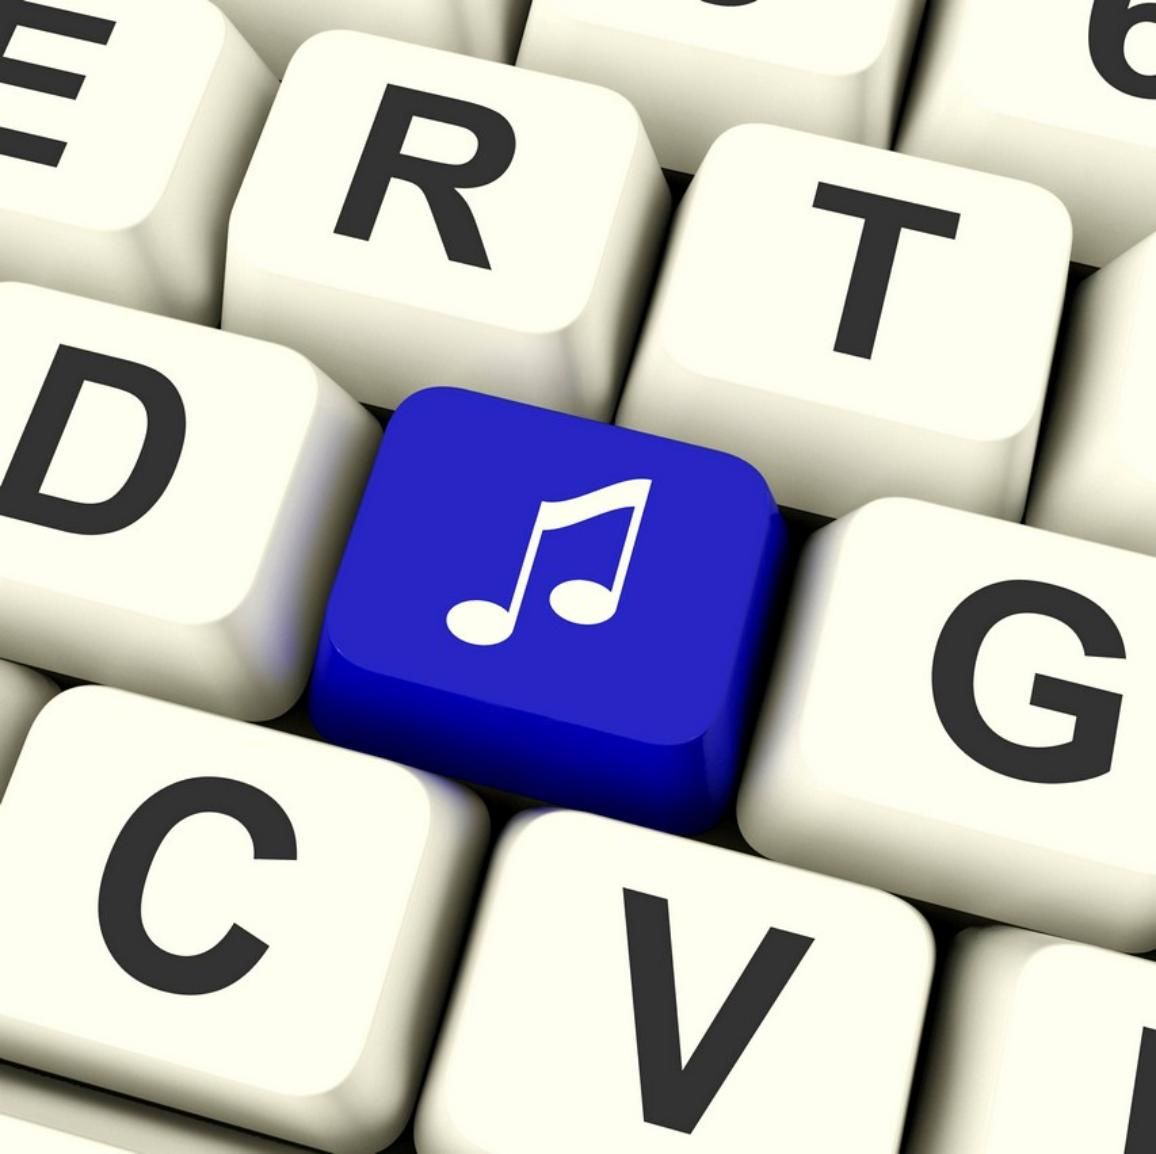 Music Symbol Computer Key In Blue Showing Online Audio